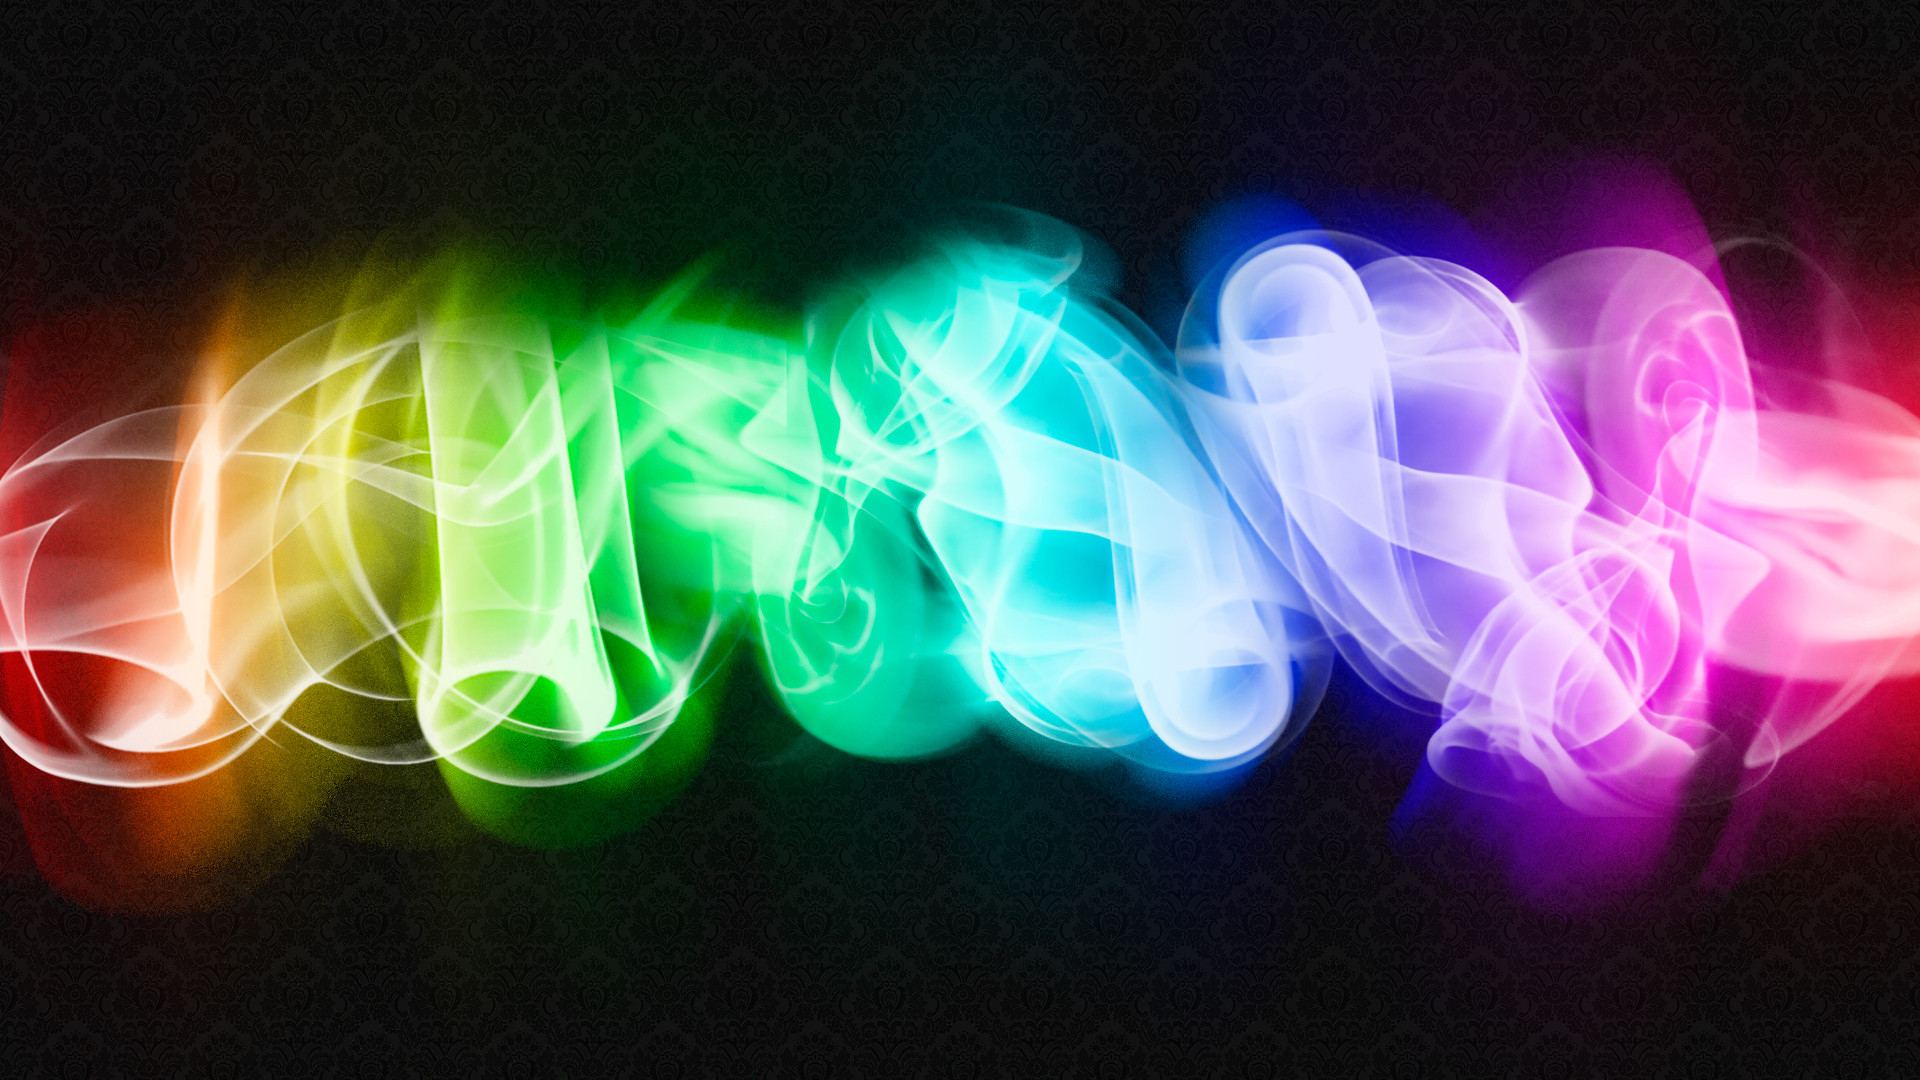 Res: 1920x1080, Colorful Neon Smoke Backgrounds